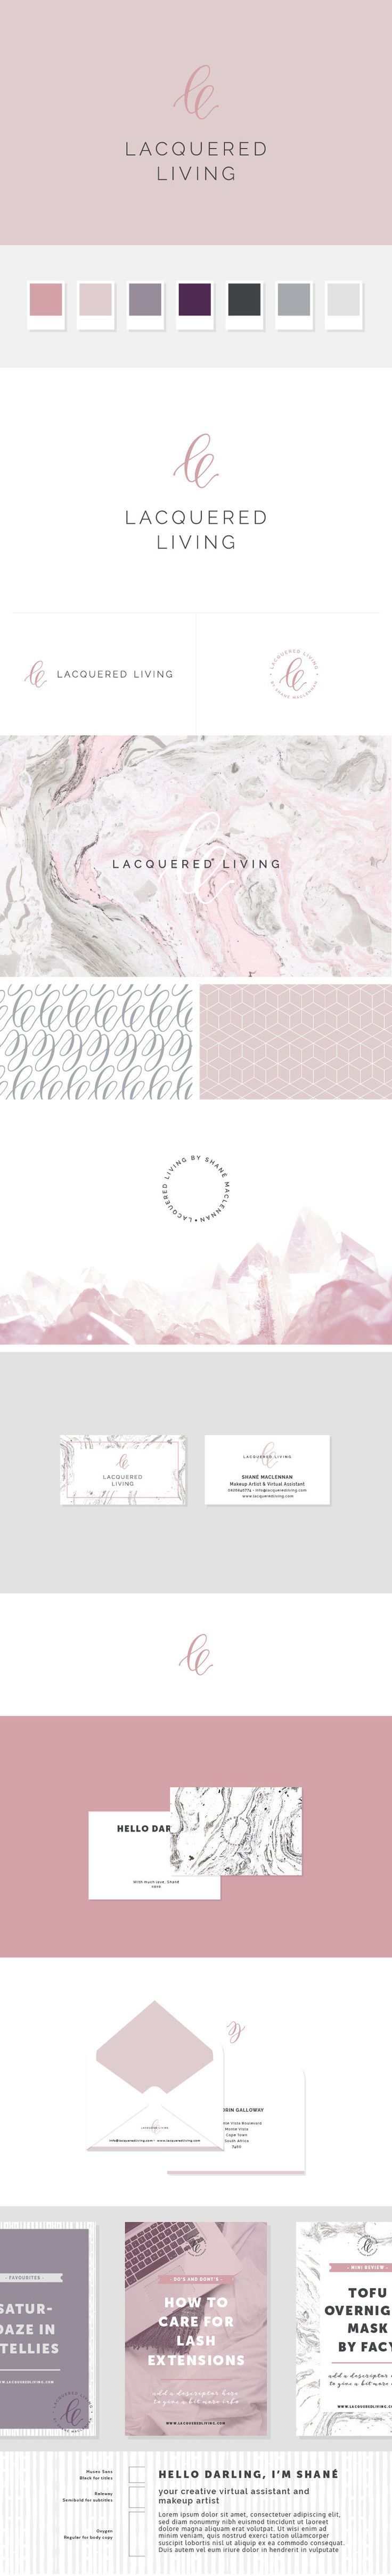 Lacquered Living Cape Town based Virtual Assistant and Makeup Artist brand styling and design by Freckled Design Studio